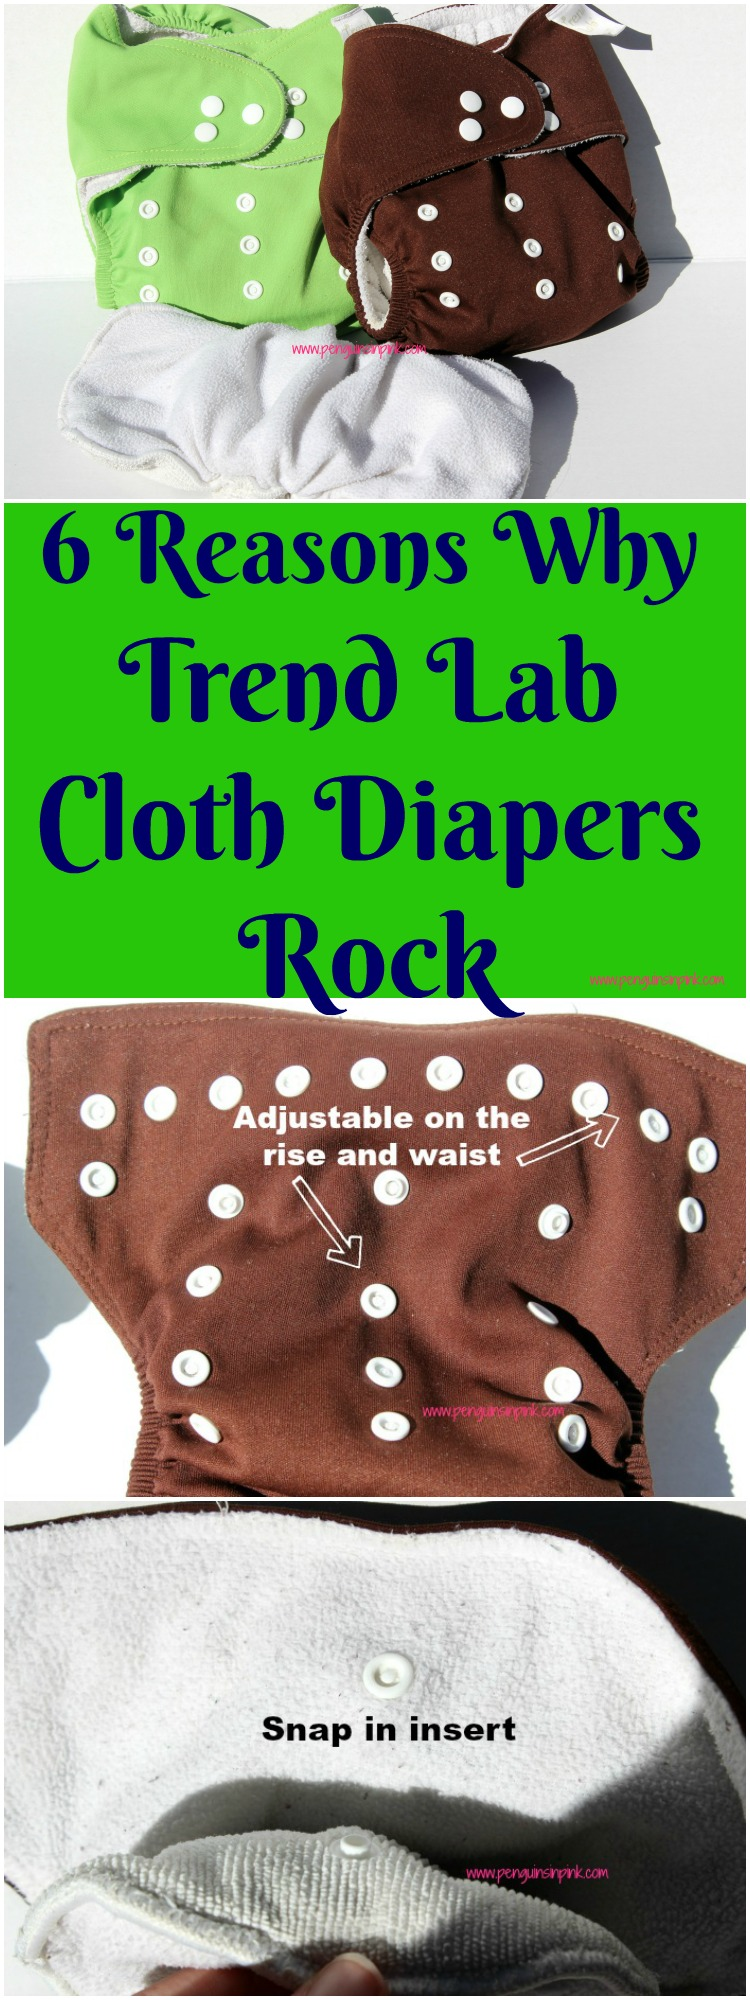 6 Reasons Why Trend Lab Cloth Diapers Rock A detailed review of Trend Lab Cloth Diapers including 6 reasons they rock (snap in liners!) and the 2 faults I found with them